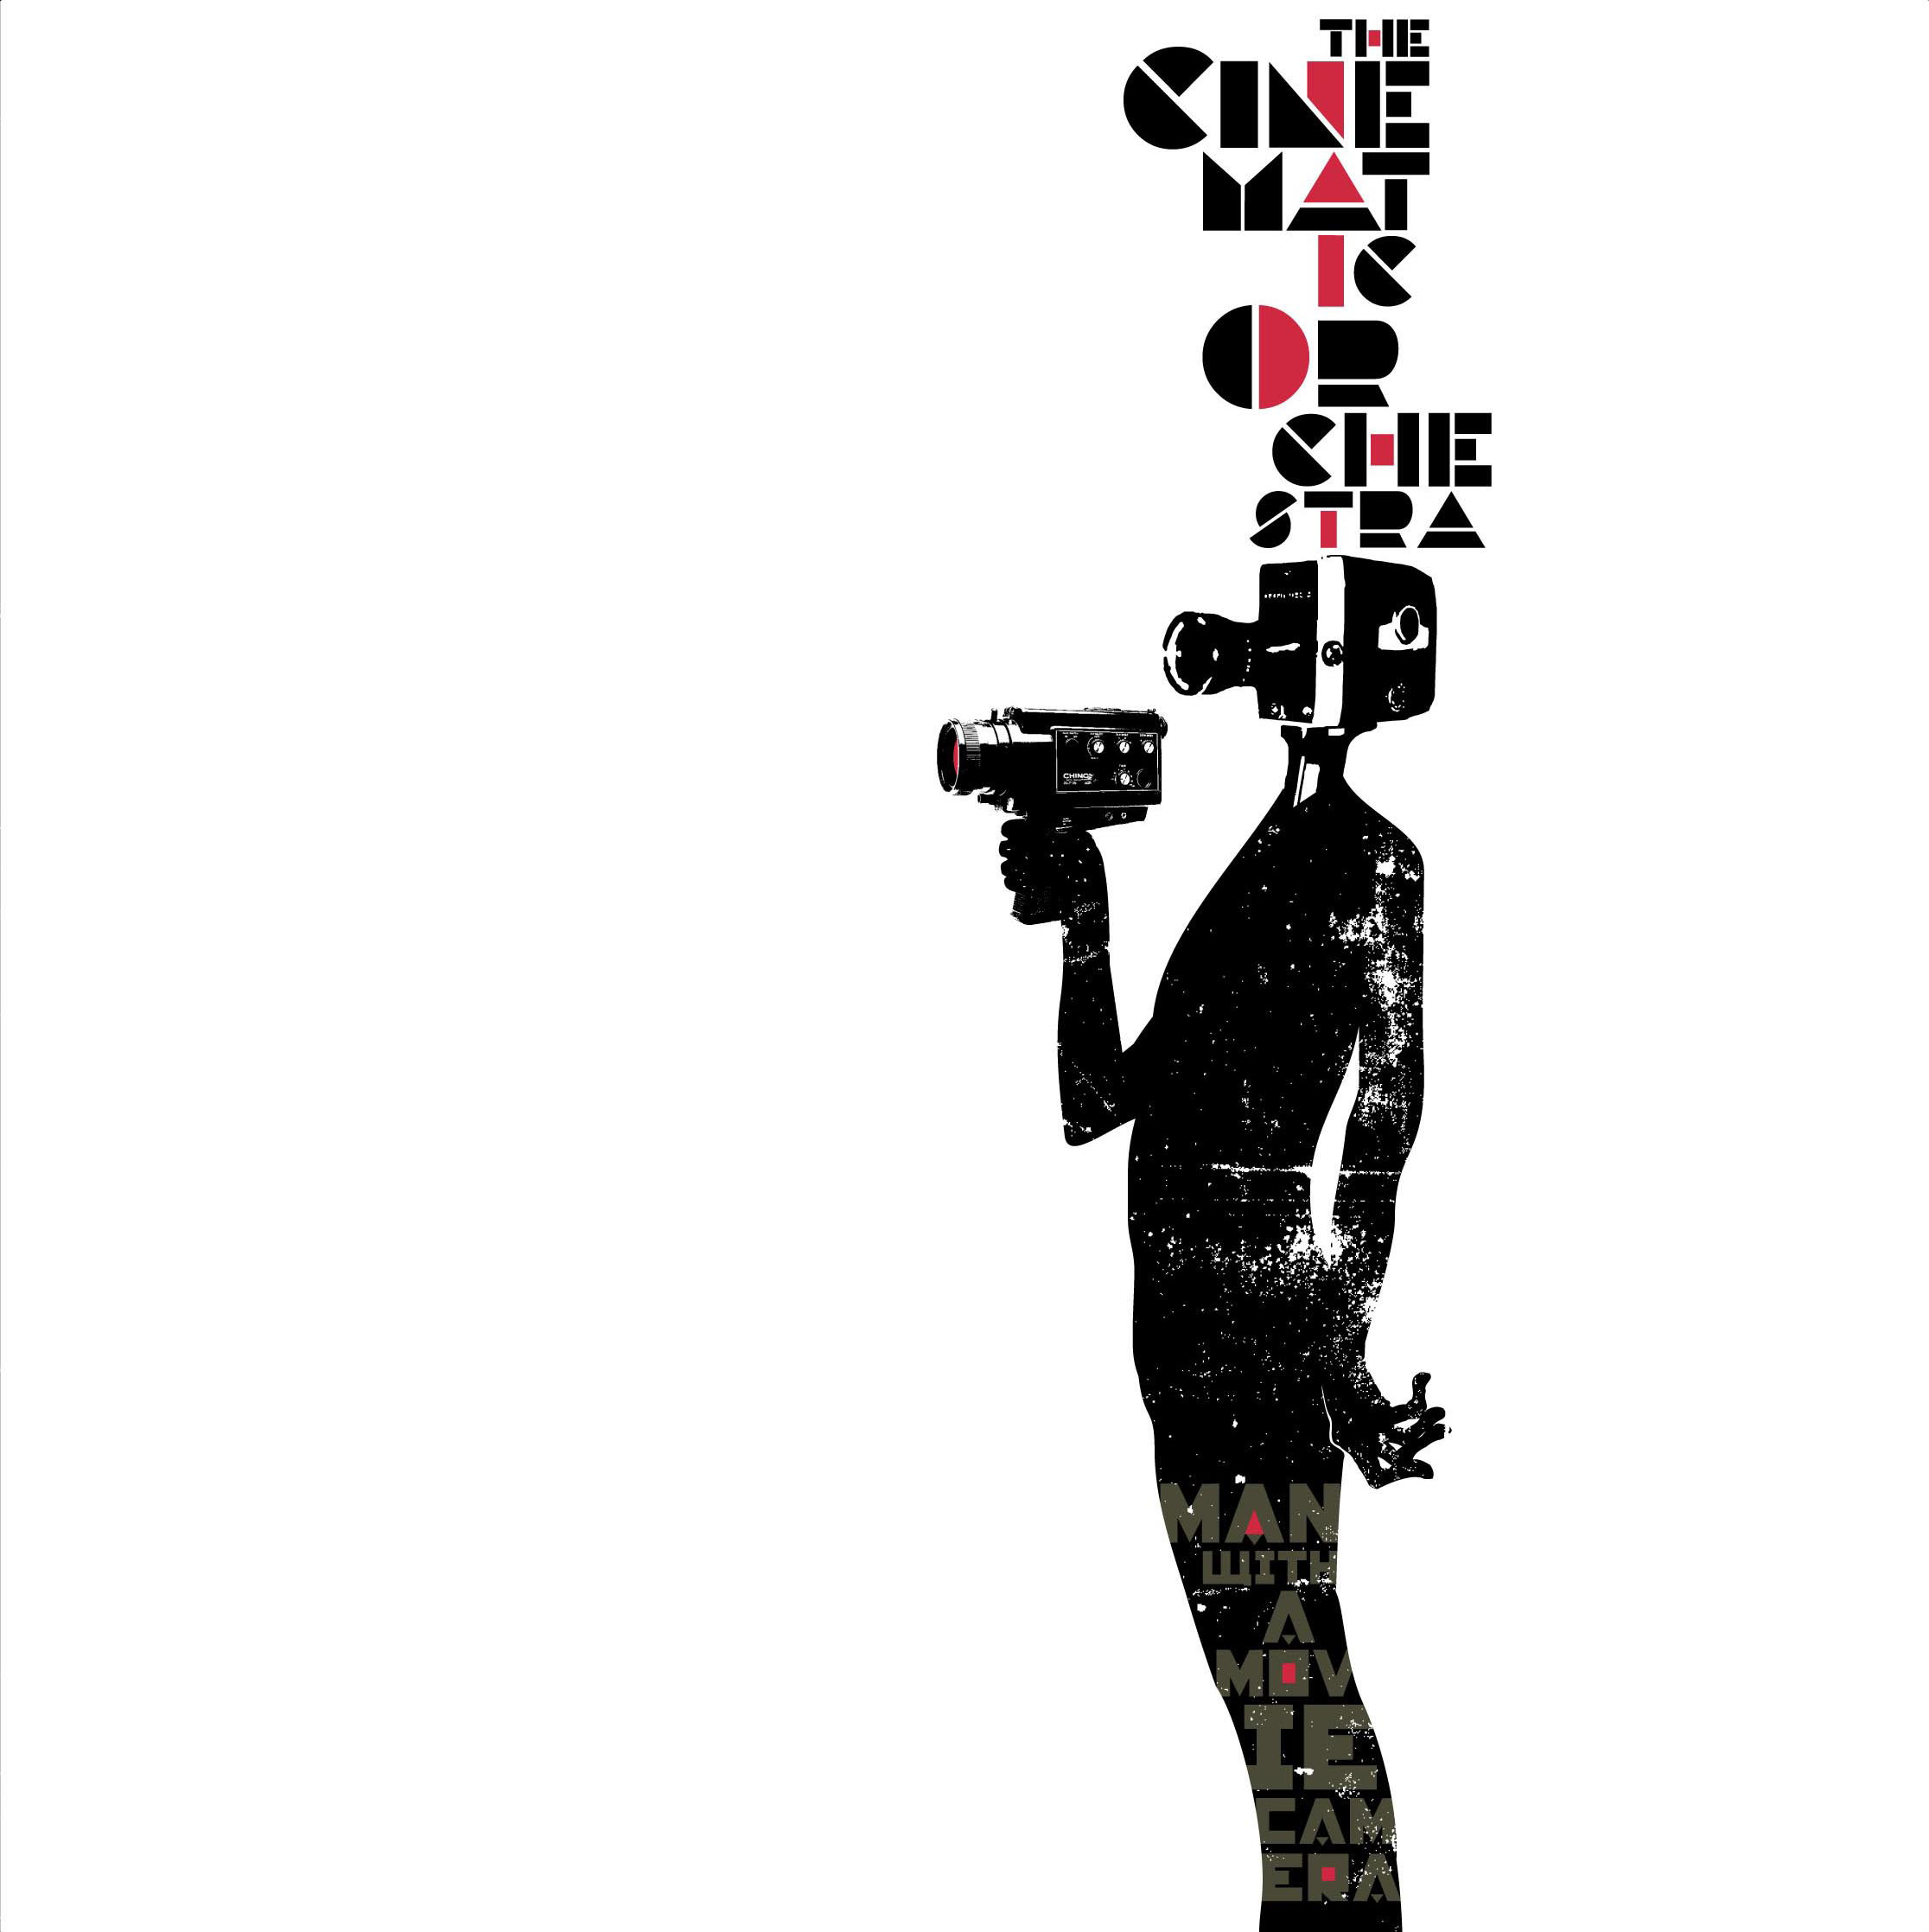 CINEMATIC ORCHESTRA MAN WITH A MOVIE